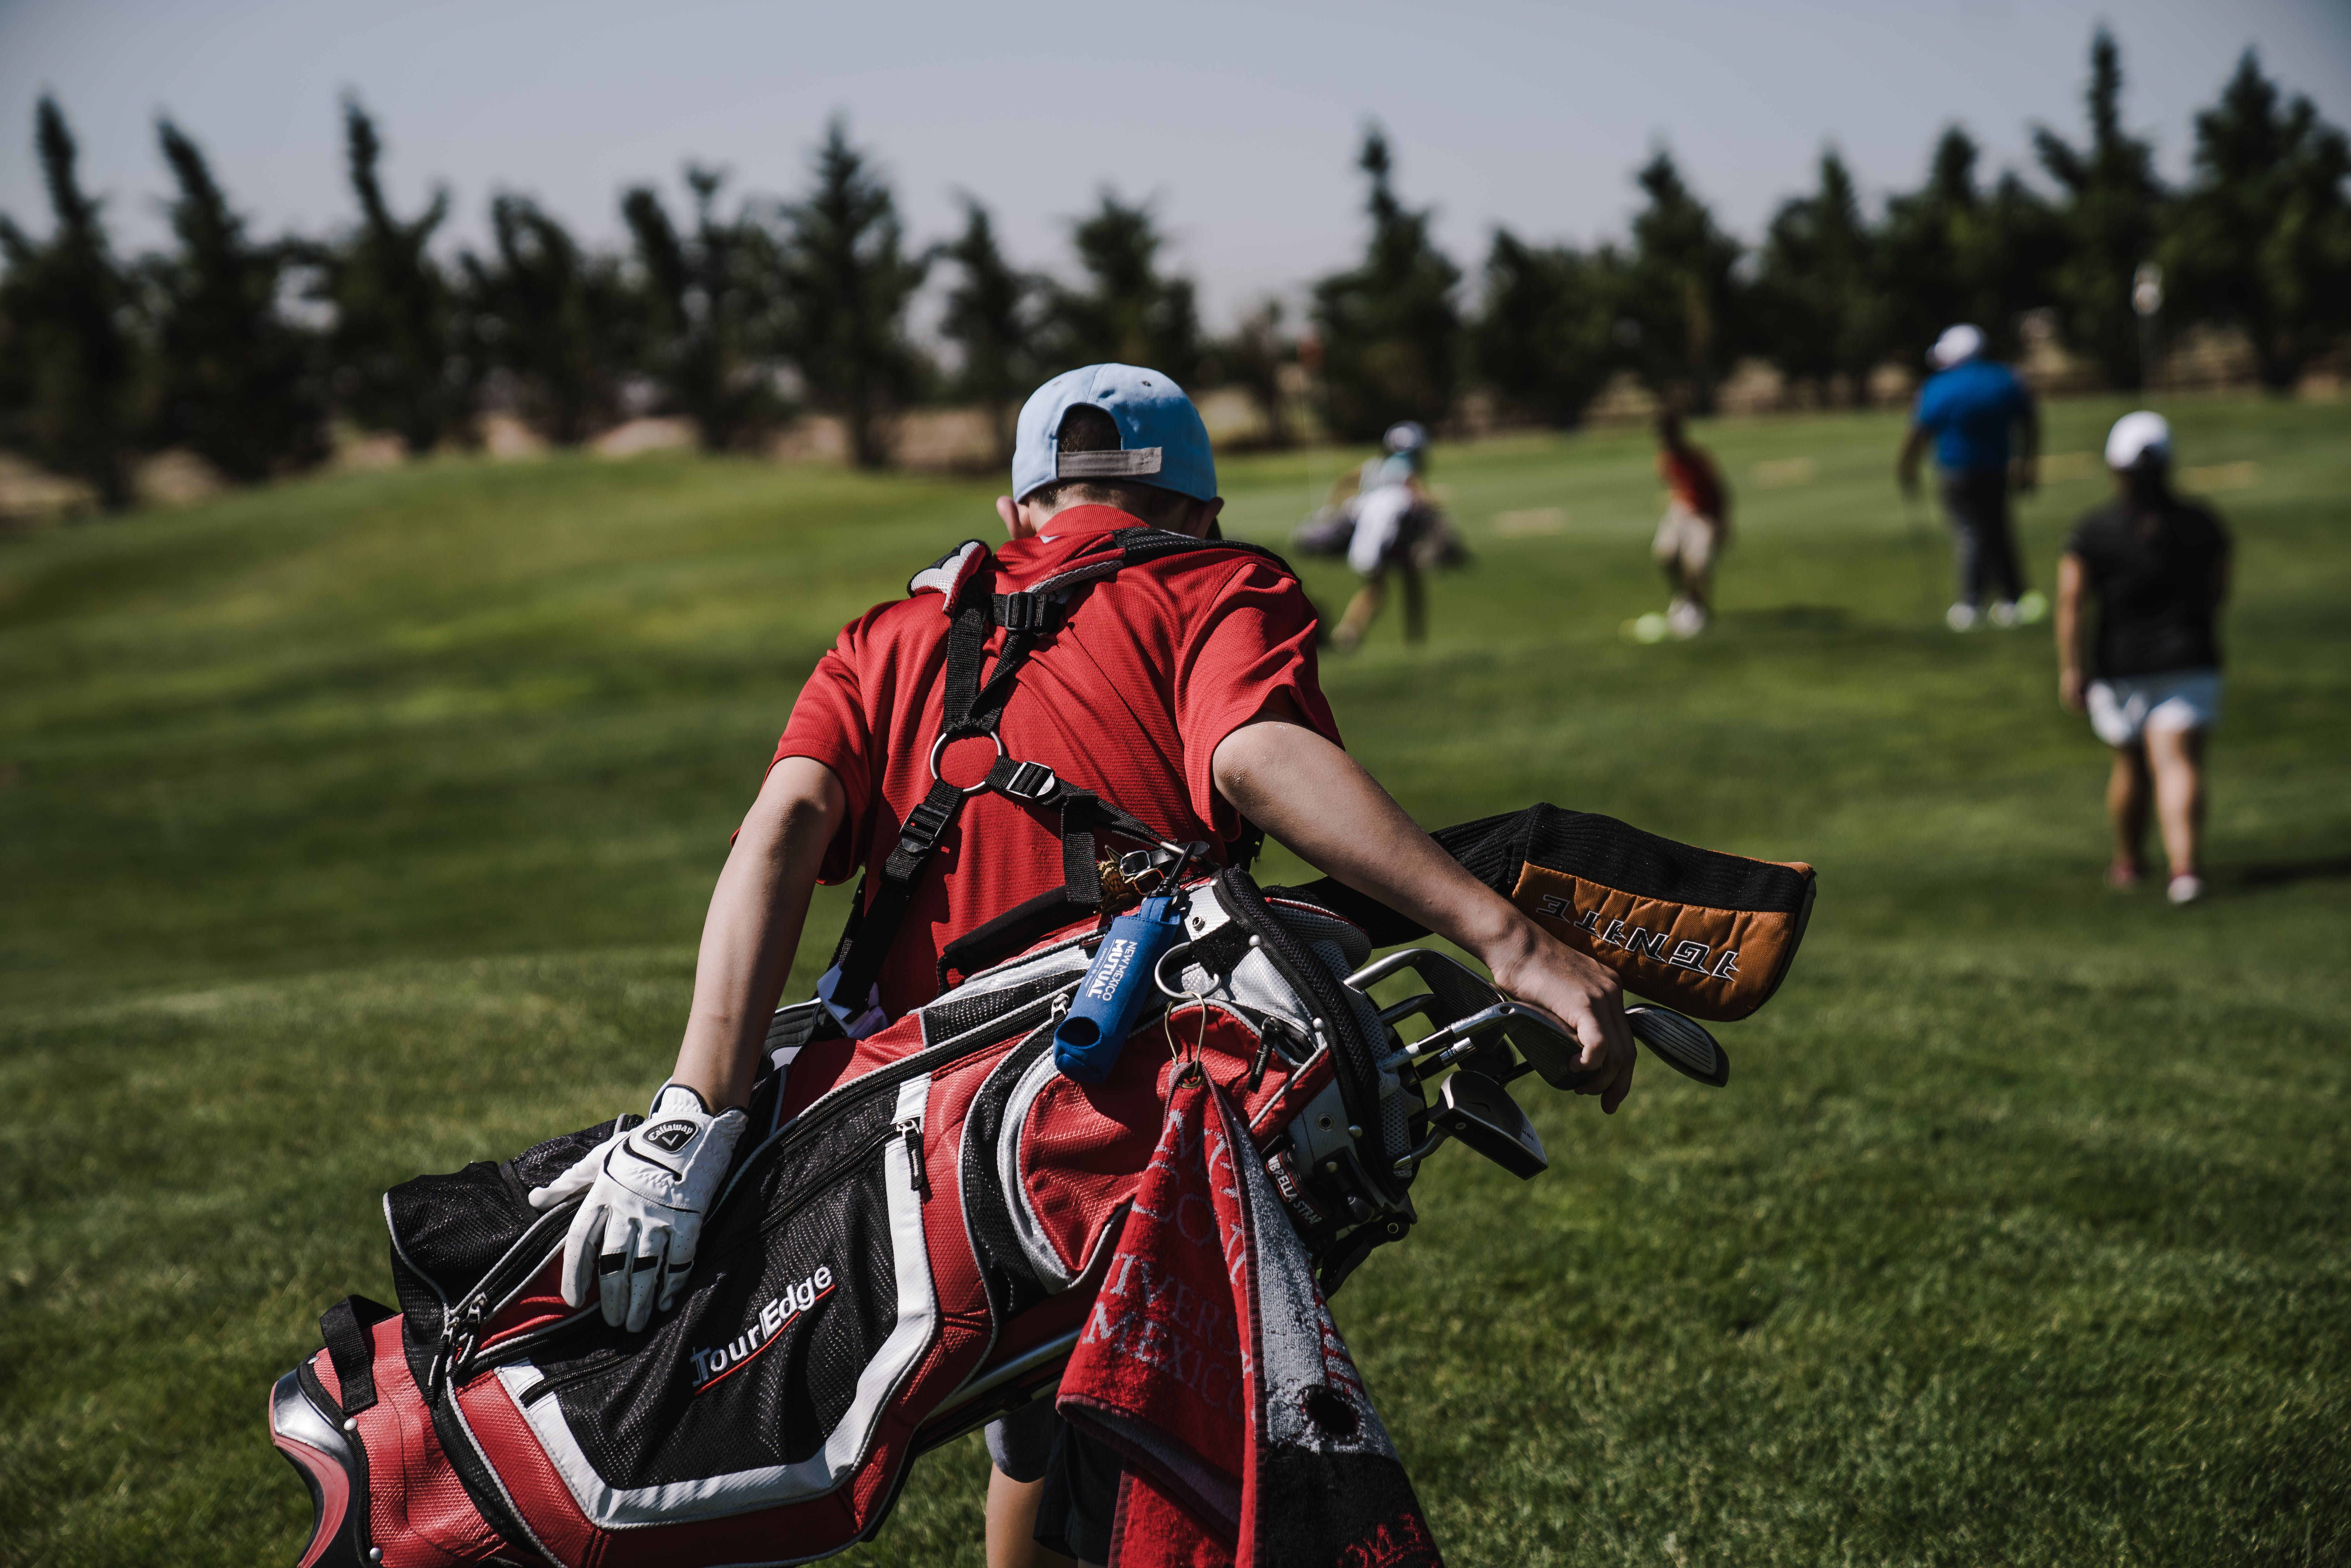 Man Walking Carrying Black and Red Golf Bag on Green Grass Field